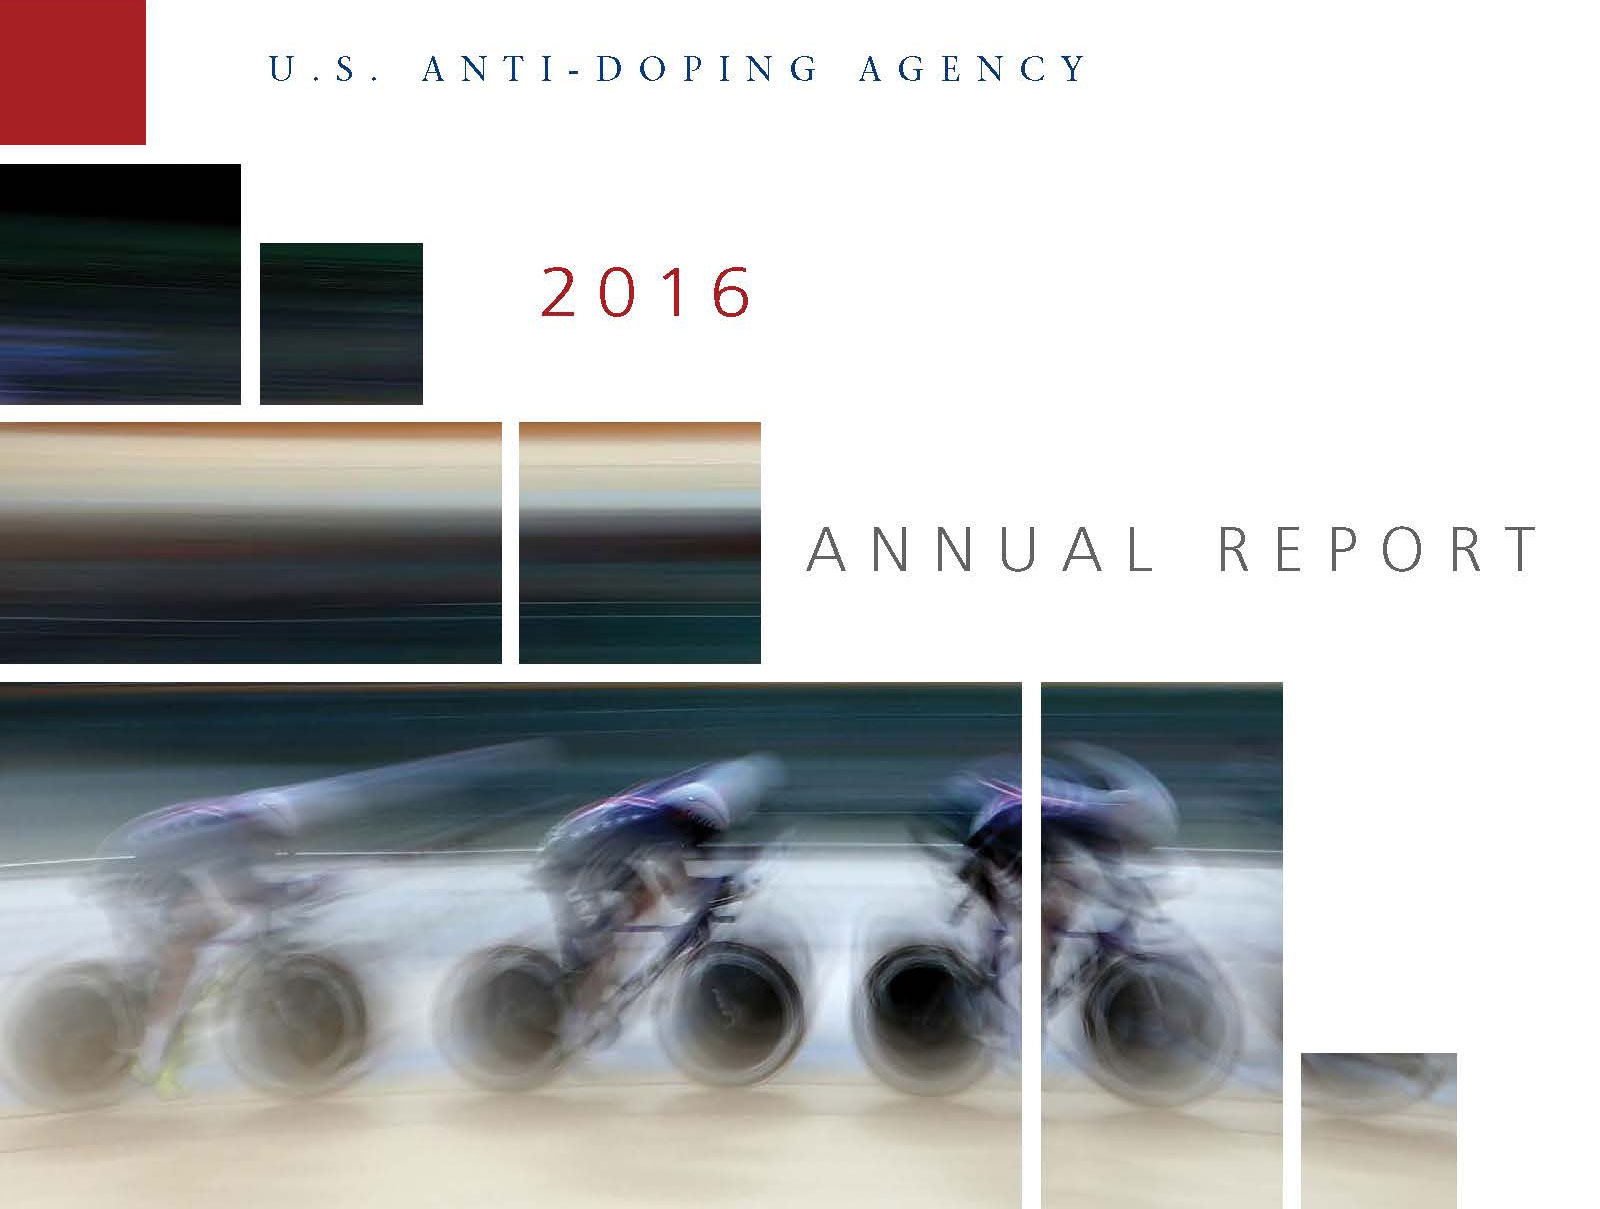 blurred cyclist on annual report cover